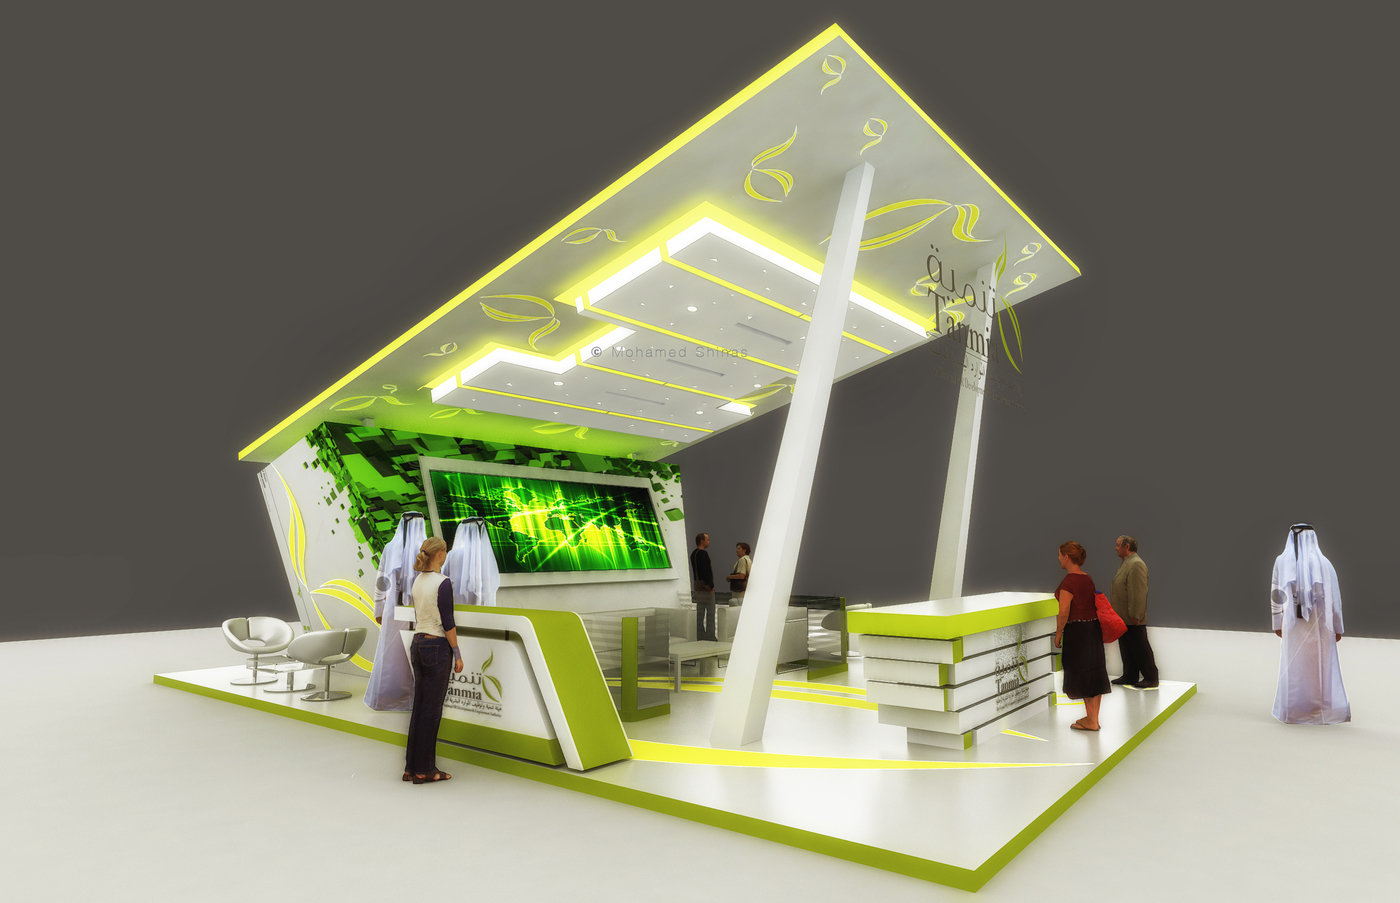 N Stand Exhibition Design : Exhibition stand design by mohamed shinas at coroflot